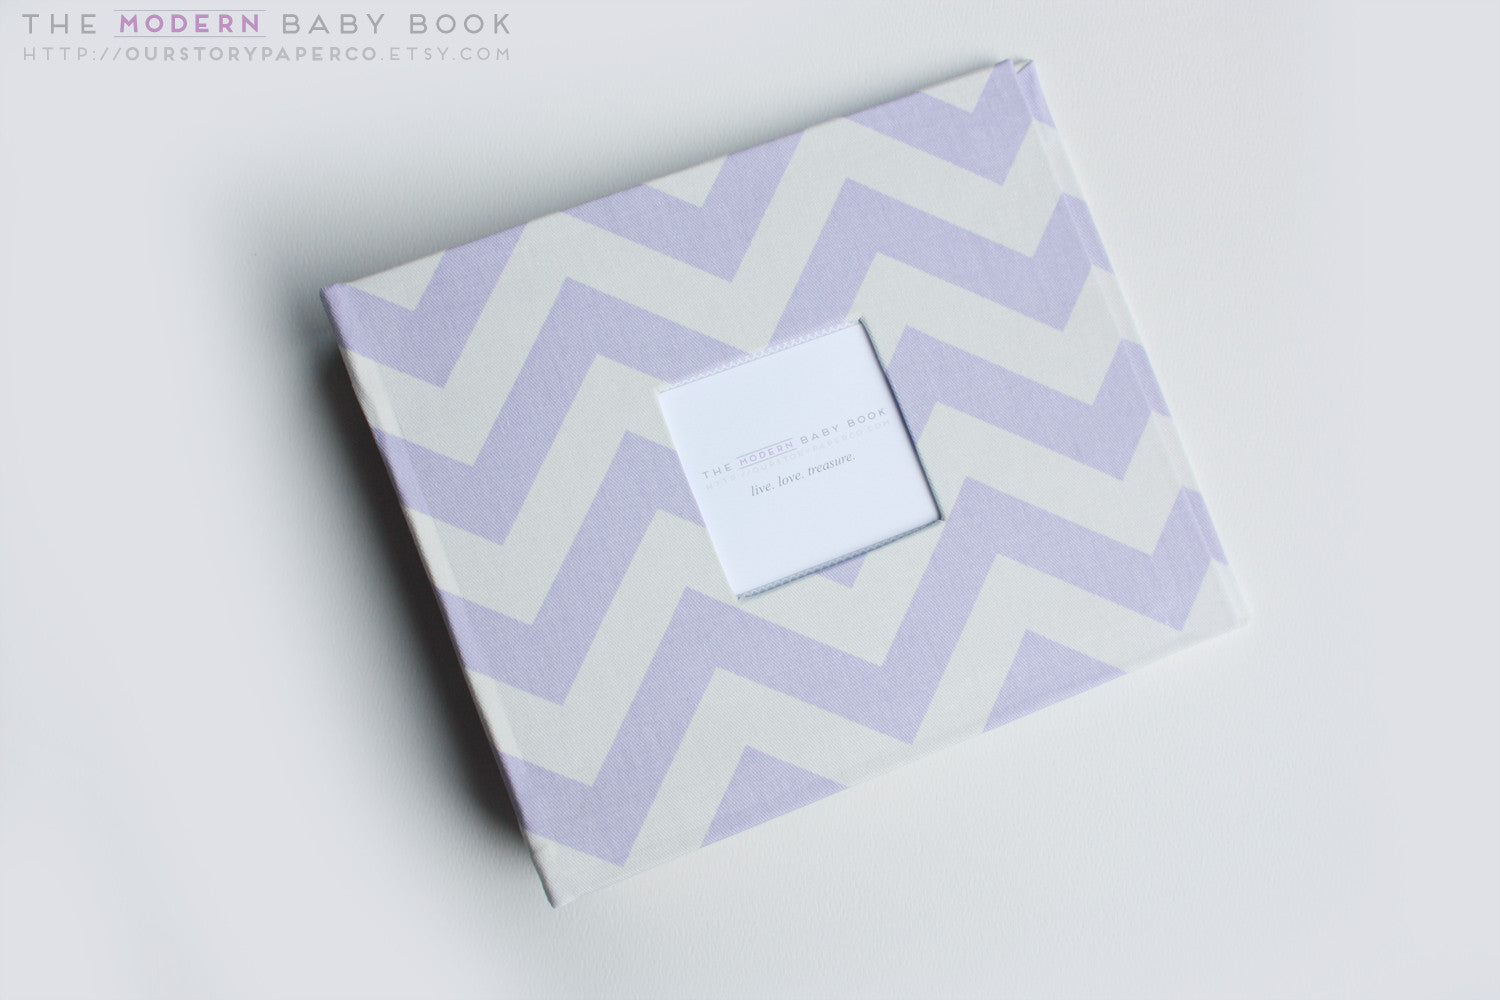 Lavender Chevron Modern Baby Book - Our Story Paper Co.